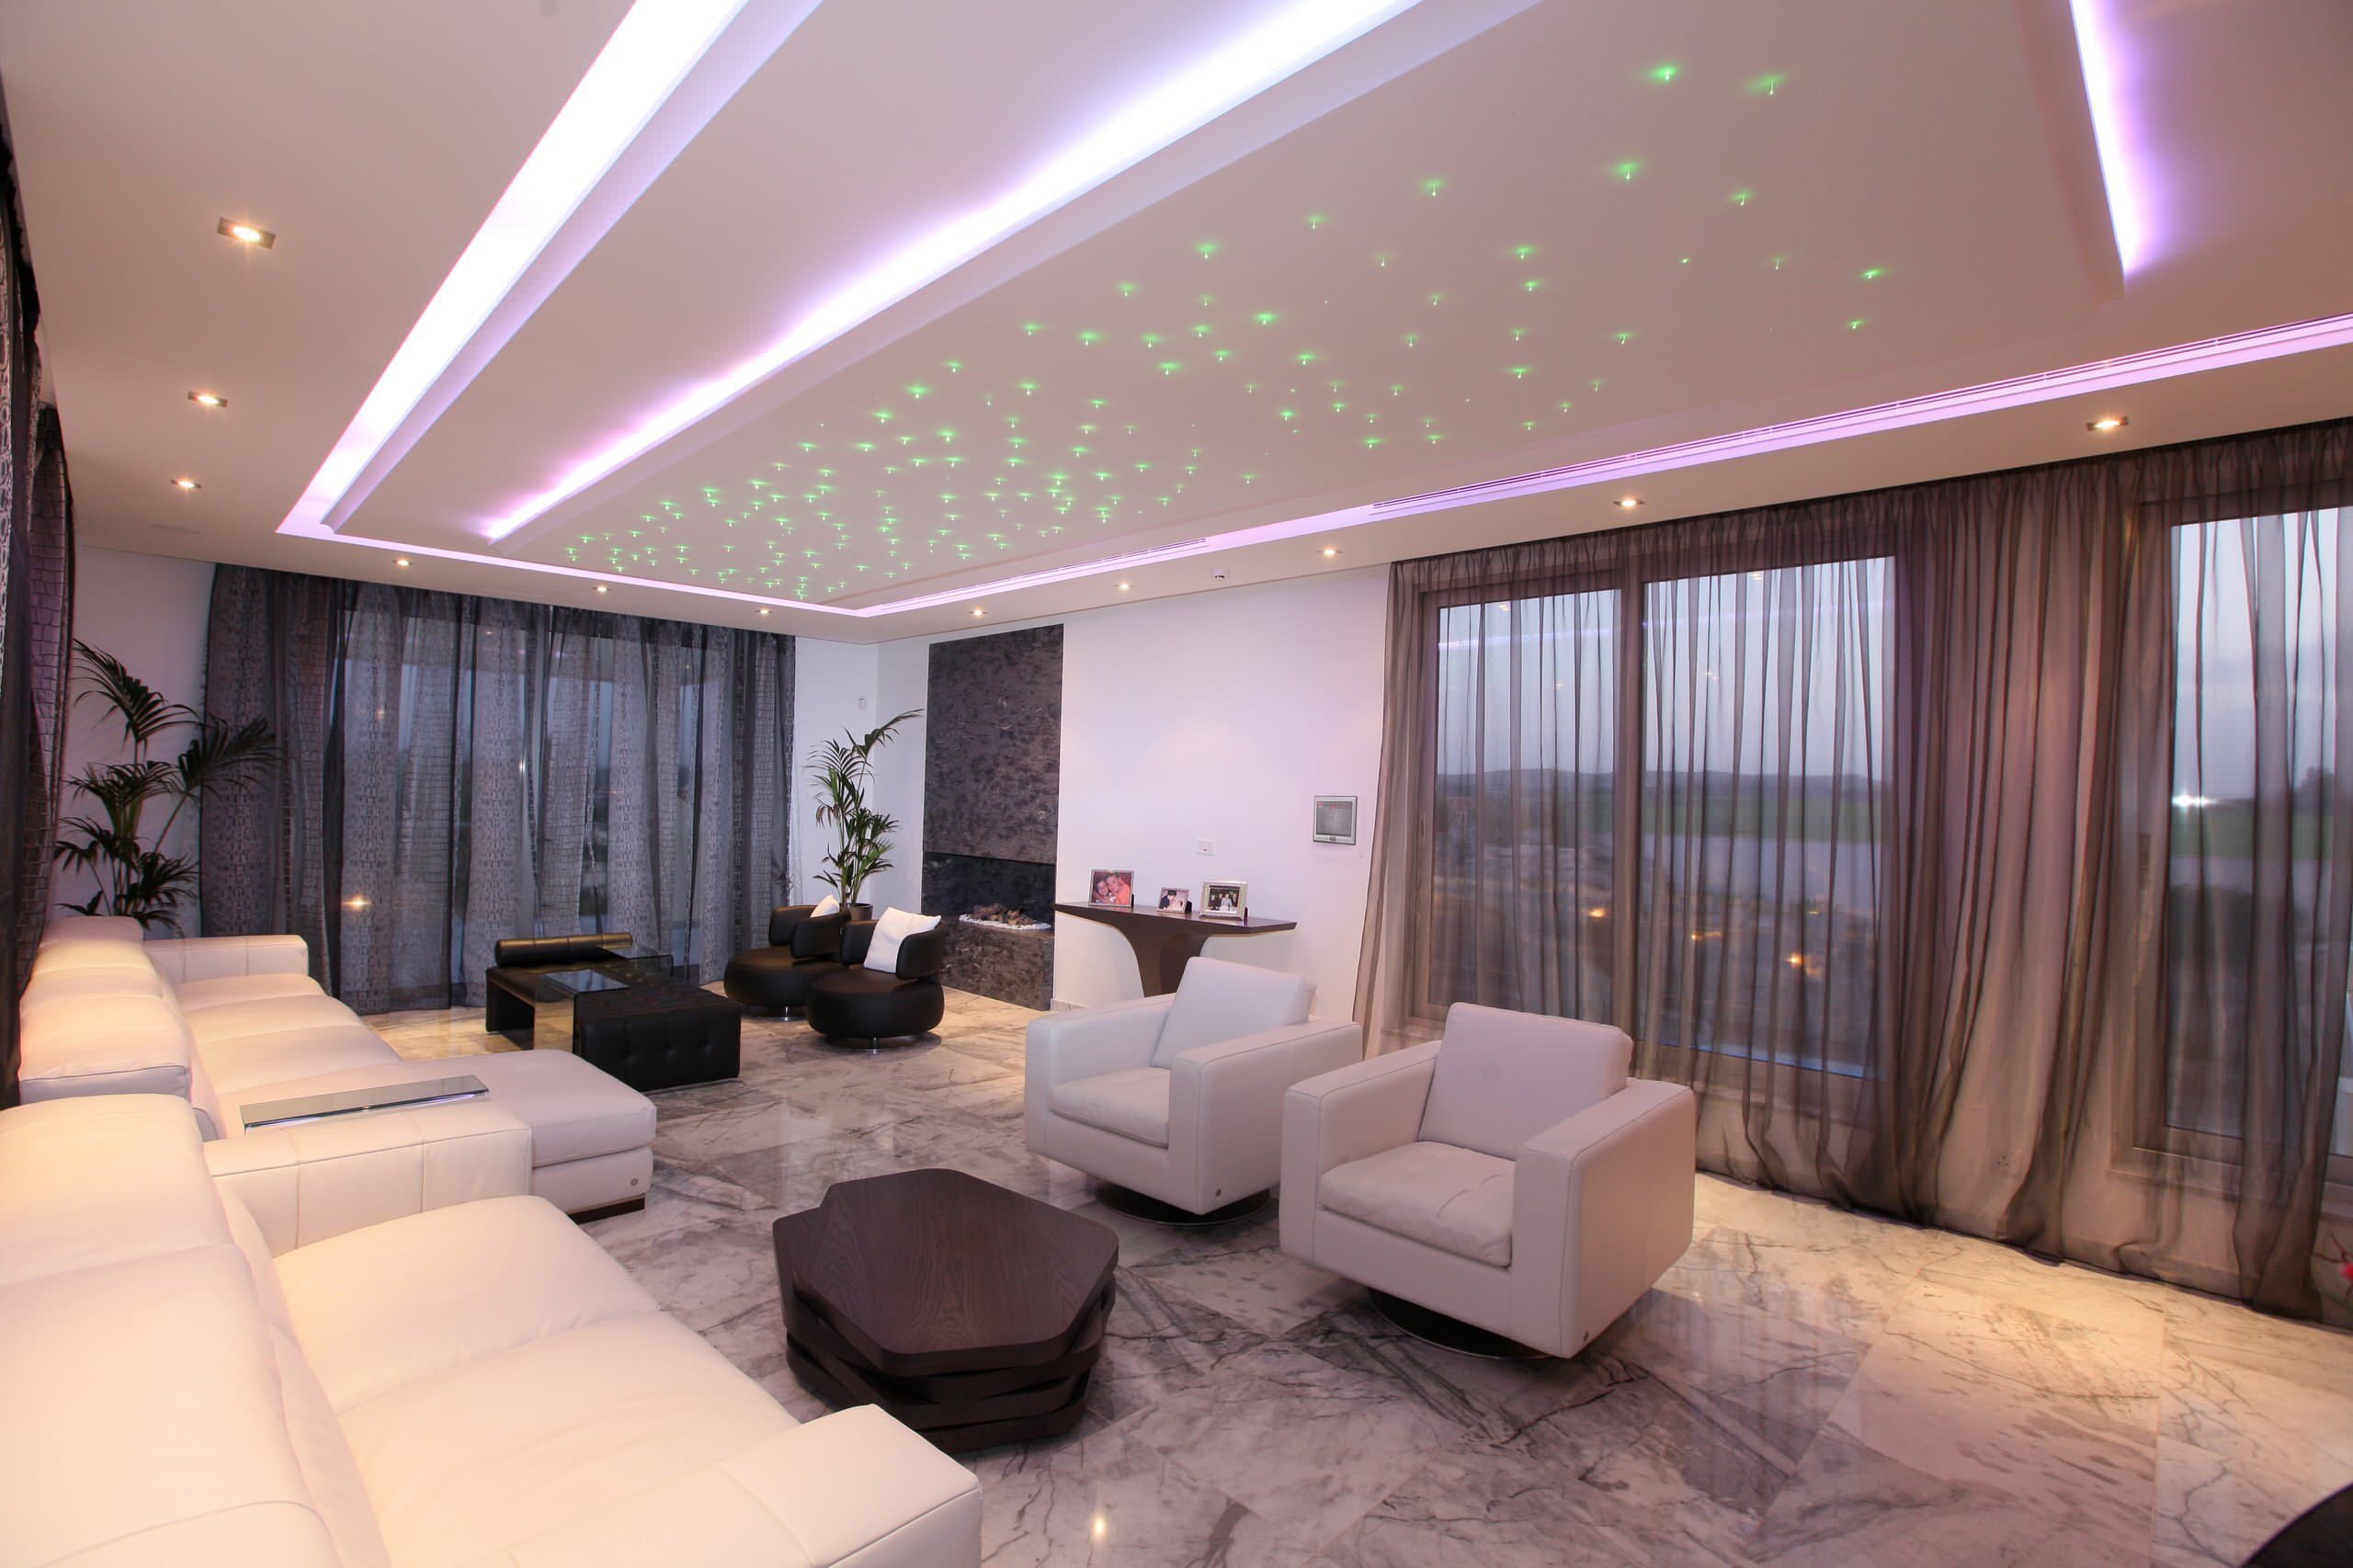 Starry dotted ceiling and marble floor for modern living room with panoramic windows